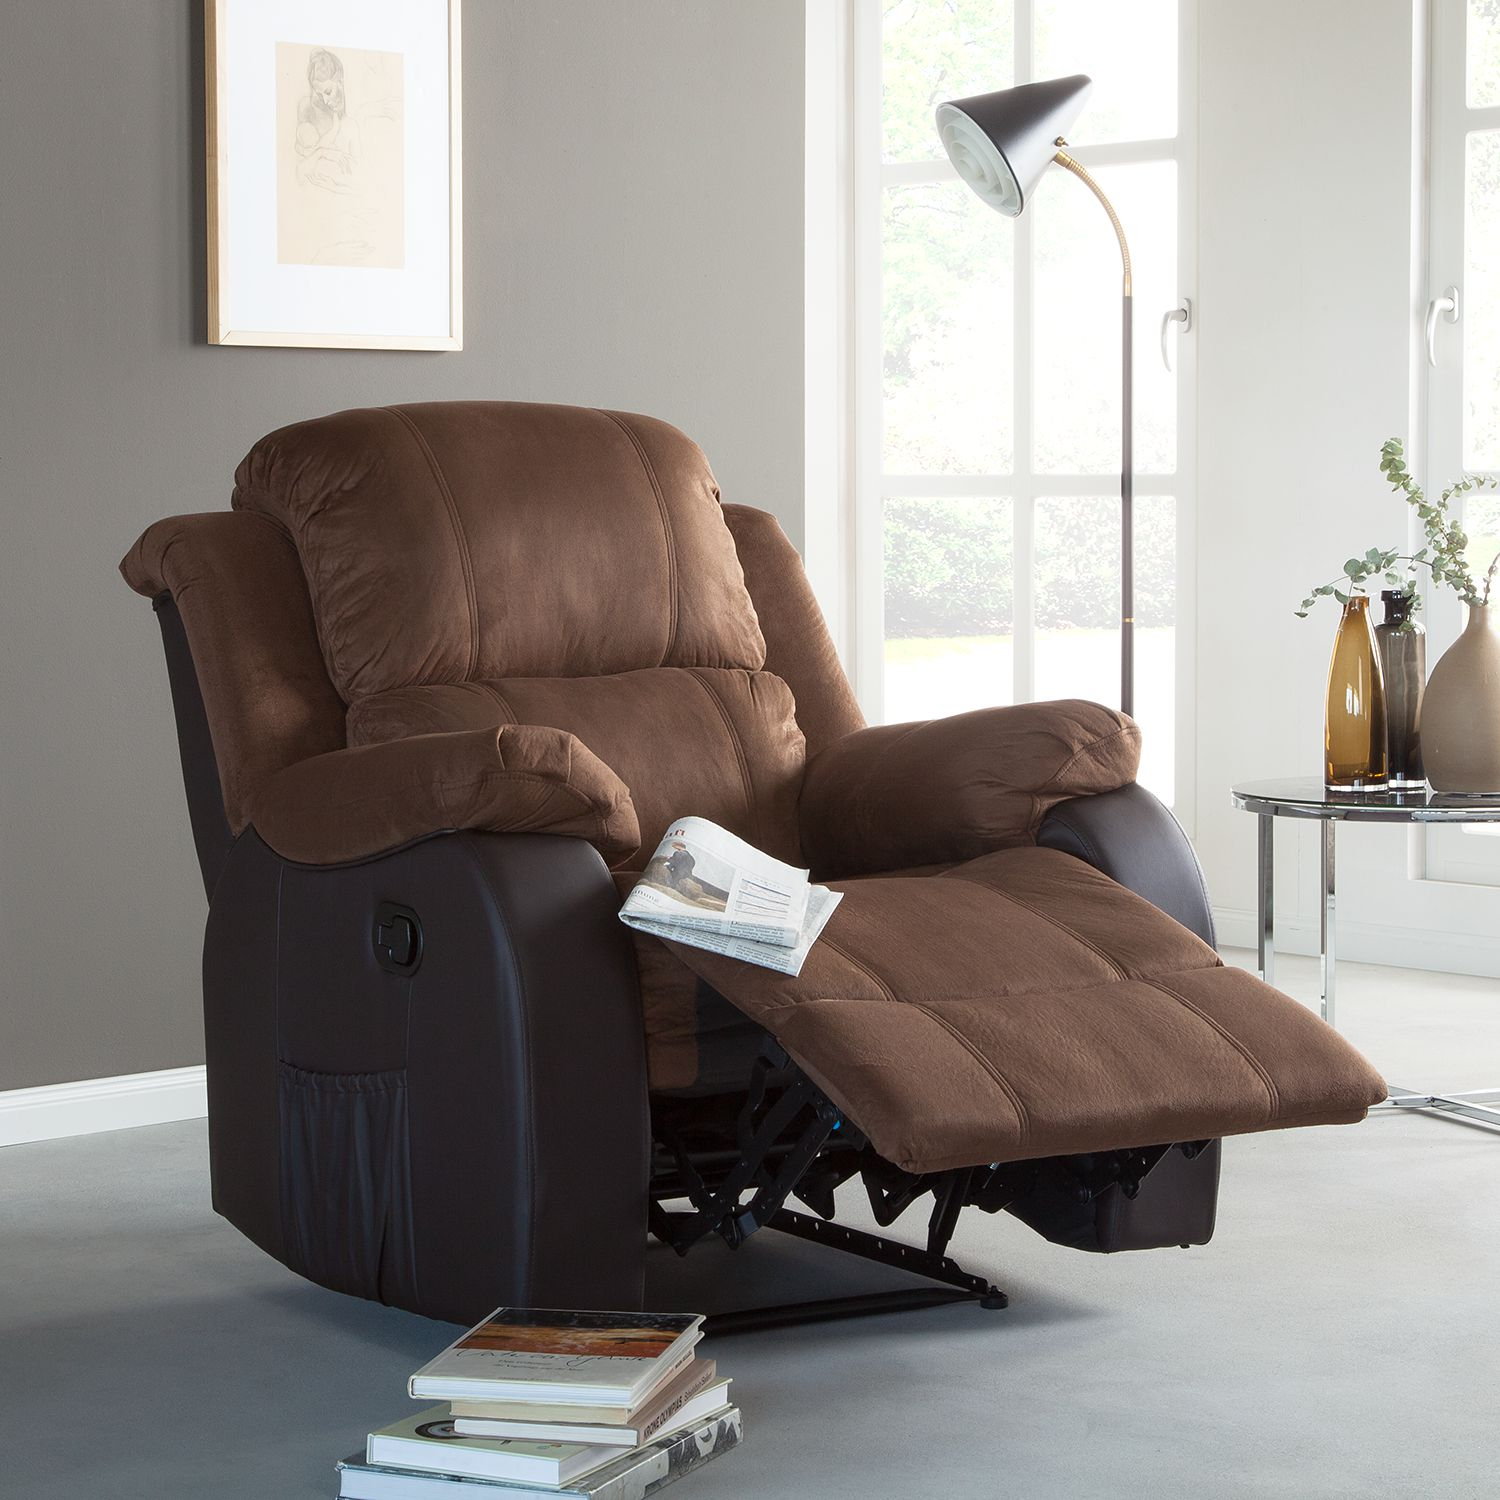 Relaxsessel Design Relaxsessel Racer Good Relaxsessel Comfort Tv Design Relaxsessel